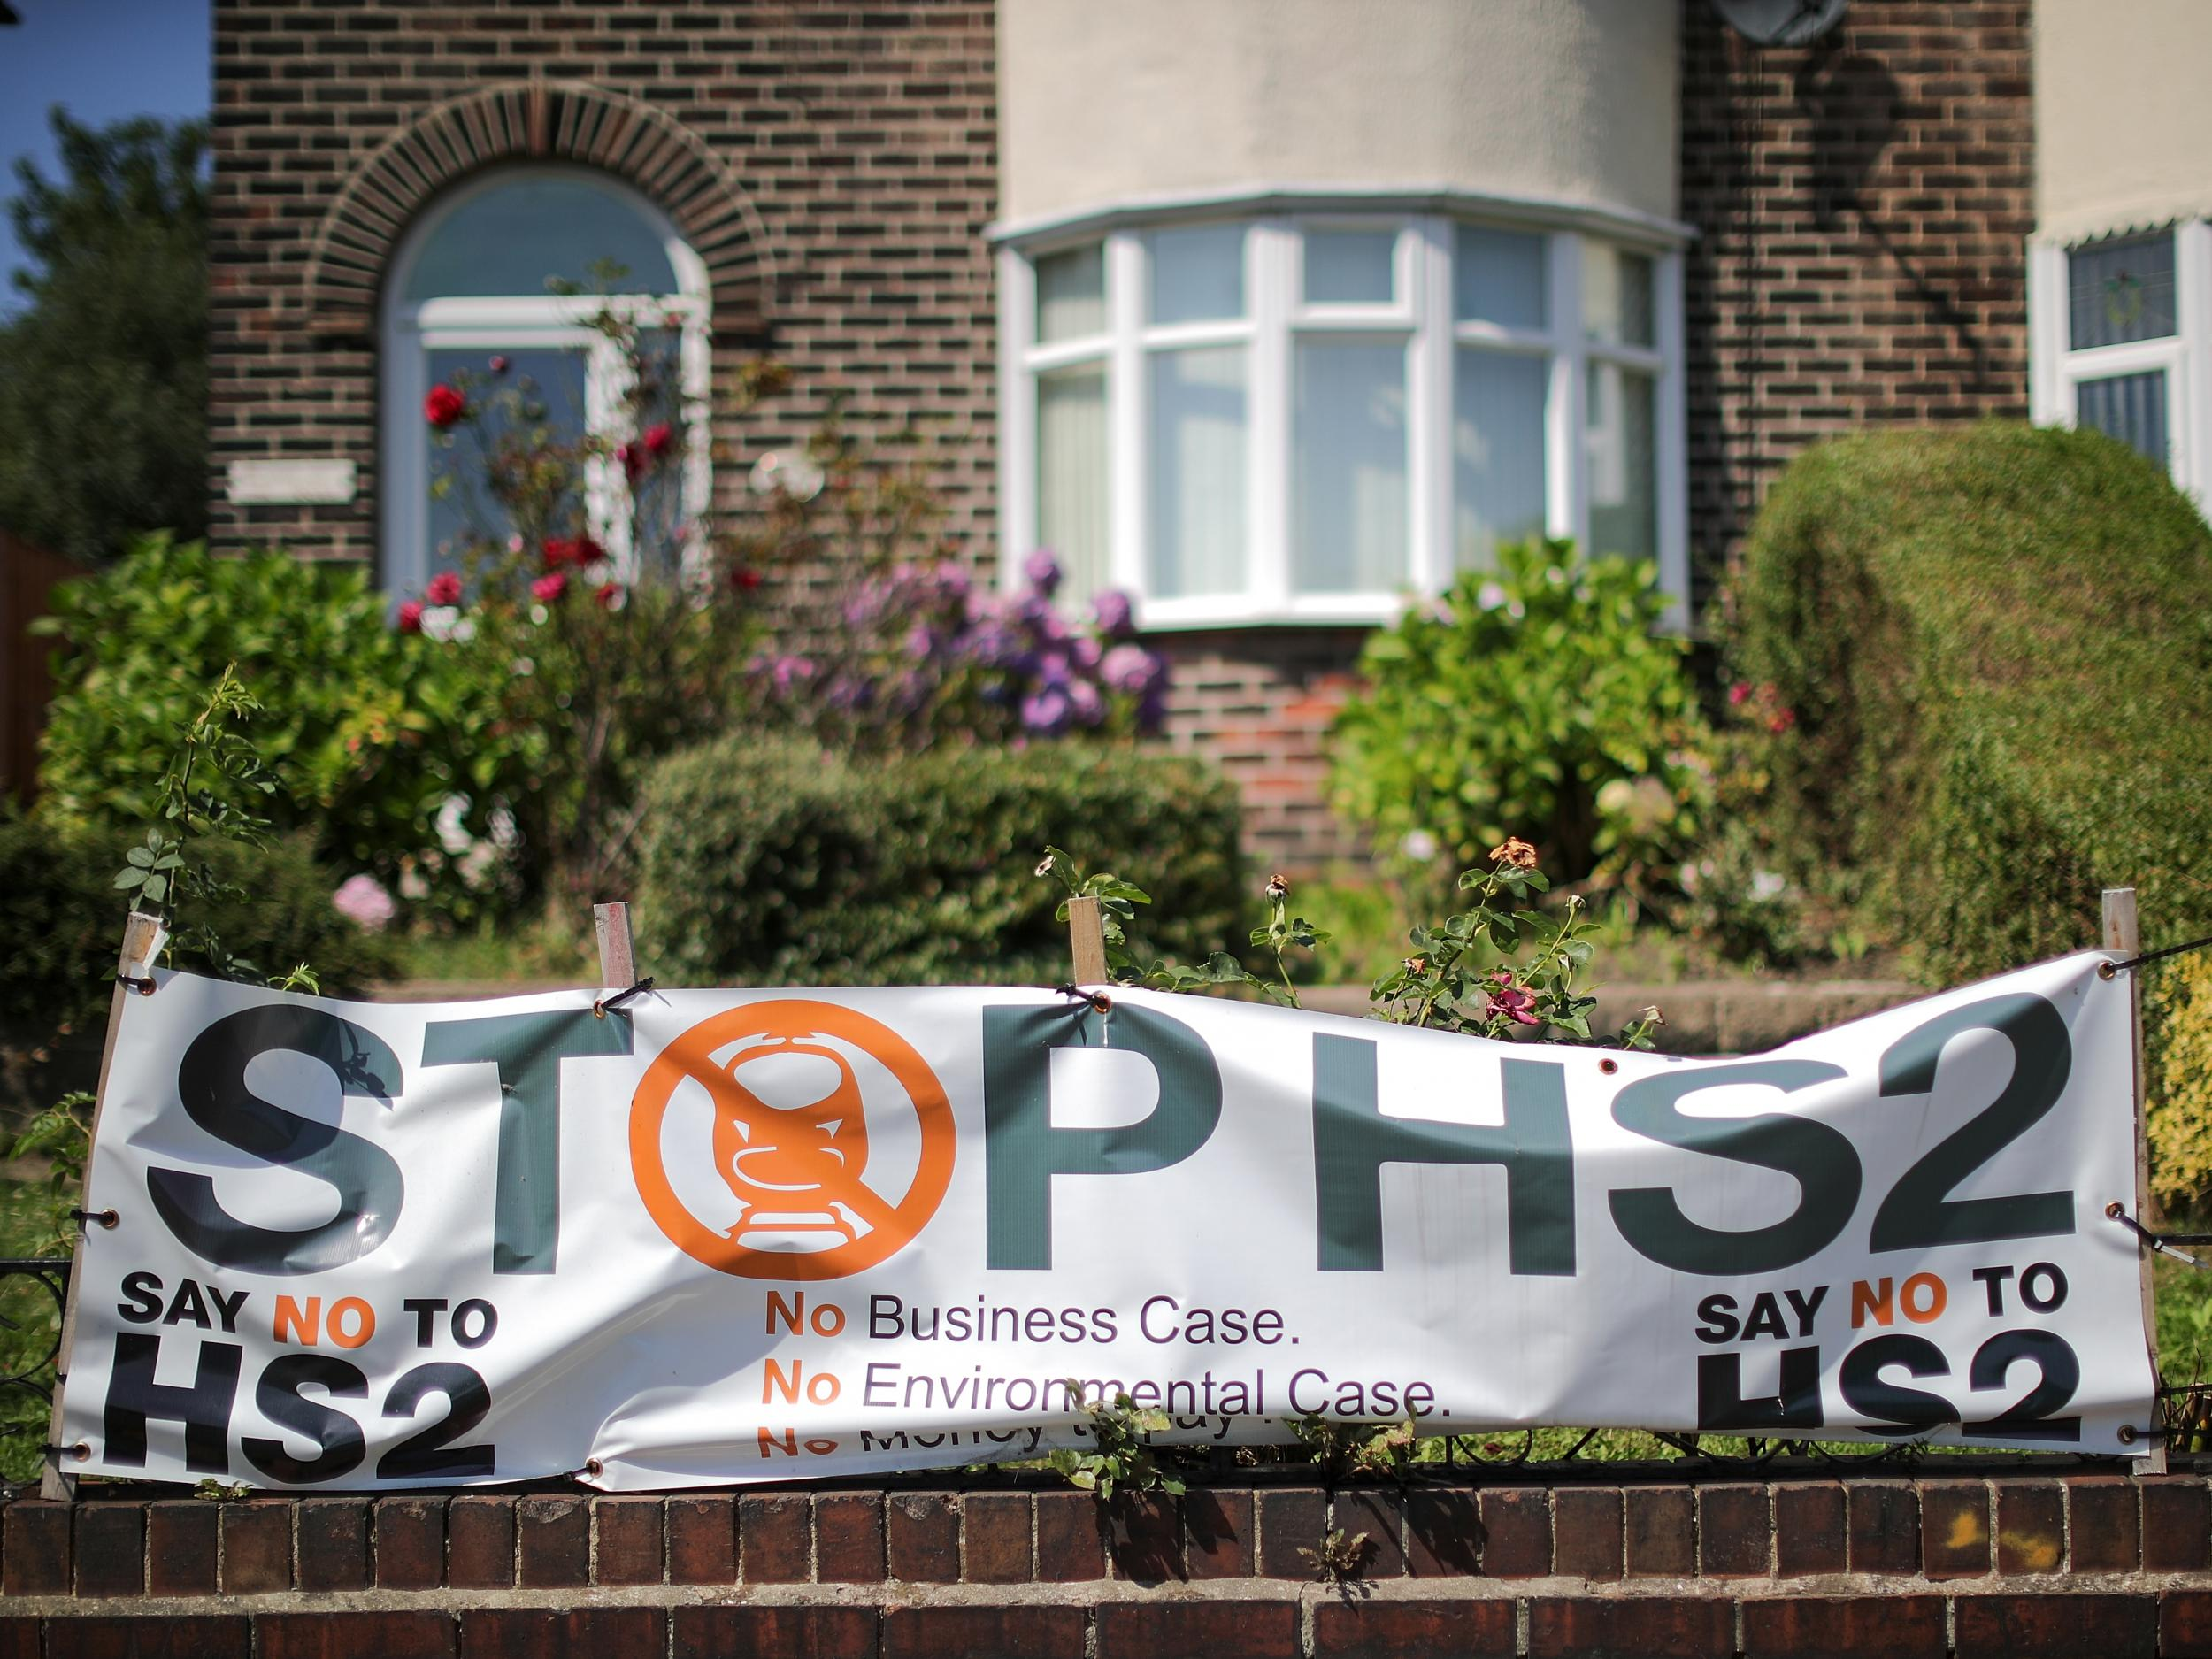 Destruction from HS2 'far worse' than previously thought as hundreds of homes set for demolition